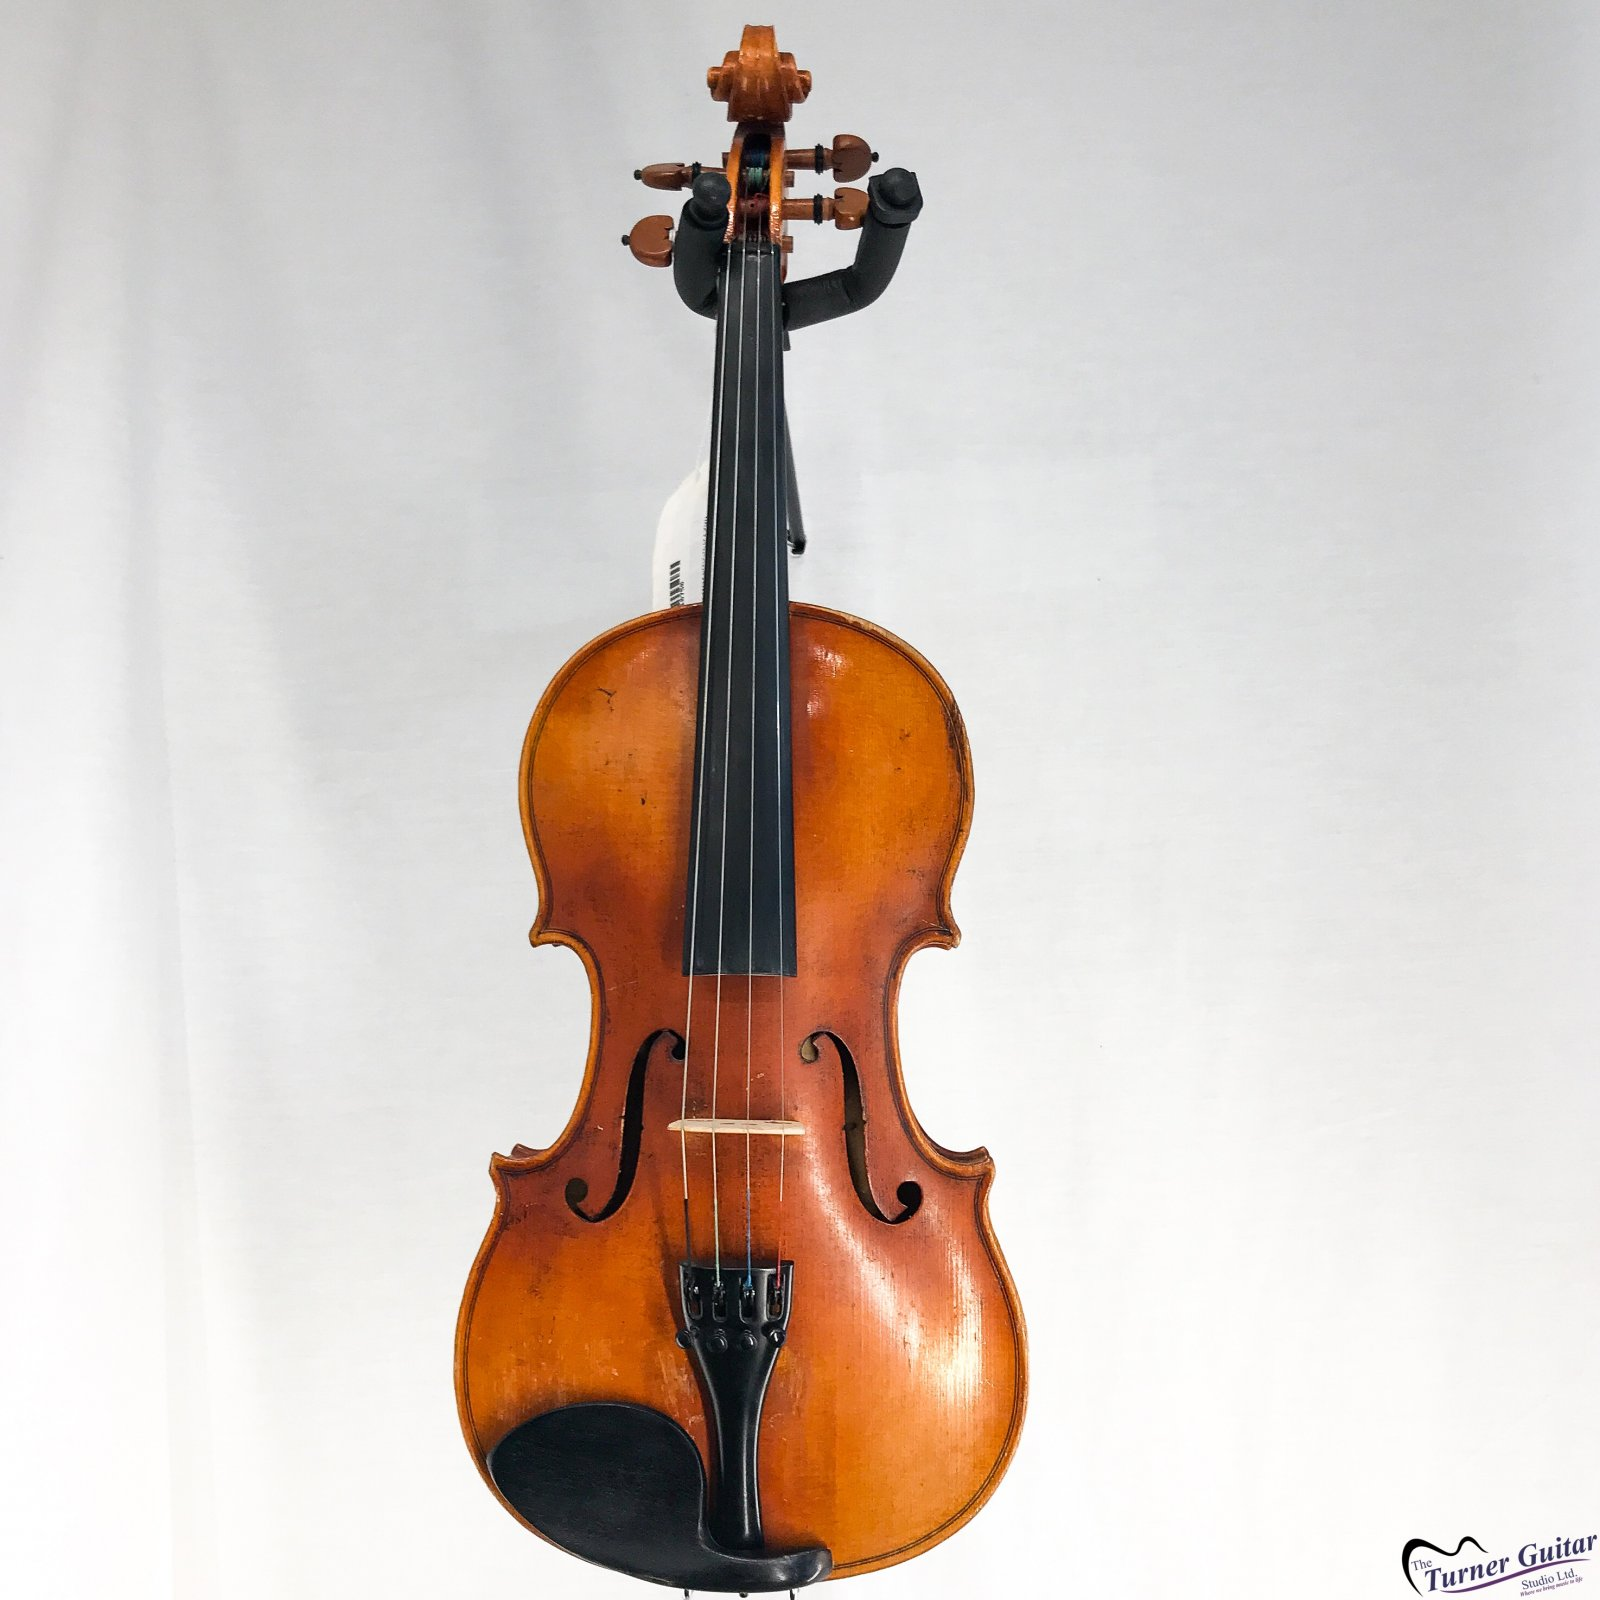 Hofner 1966 German Violin - Hand Crafted - Good Condition Used